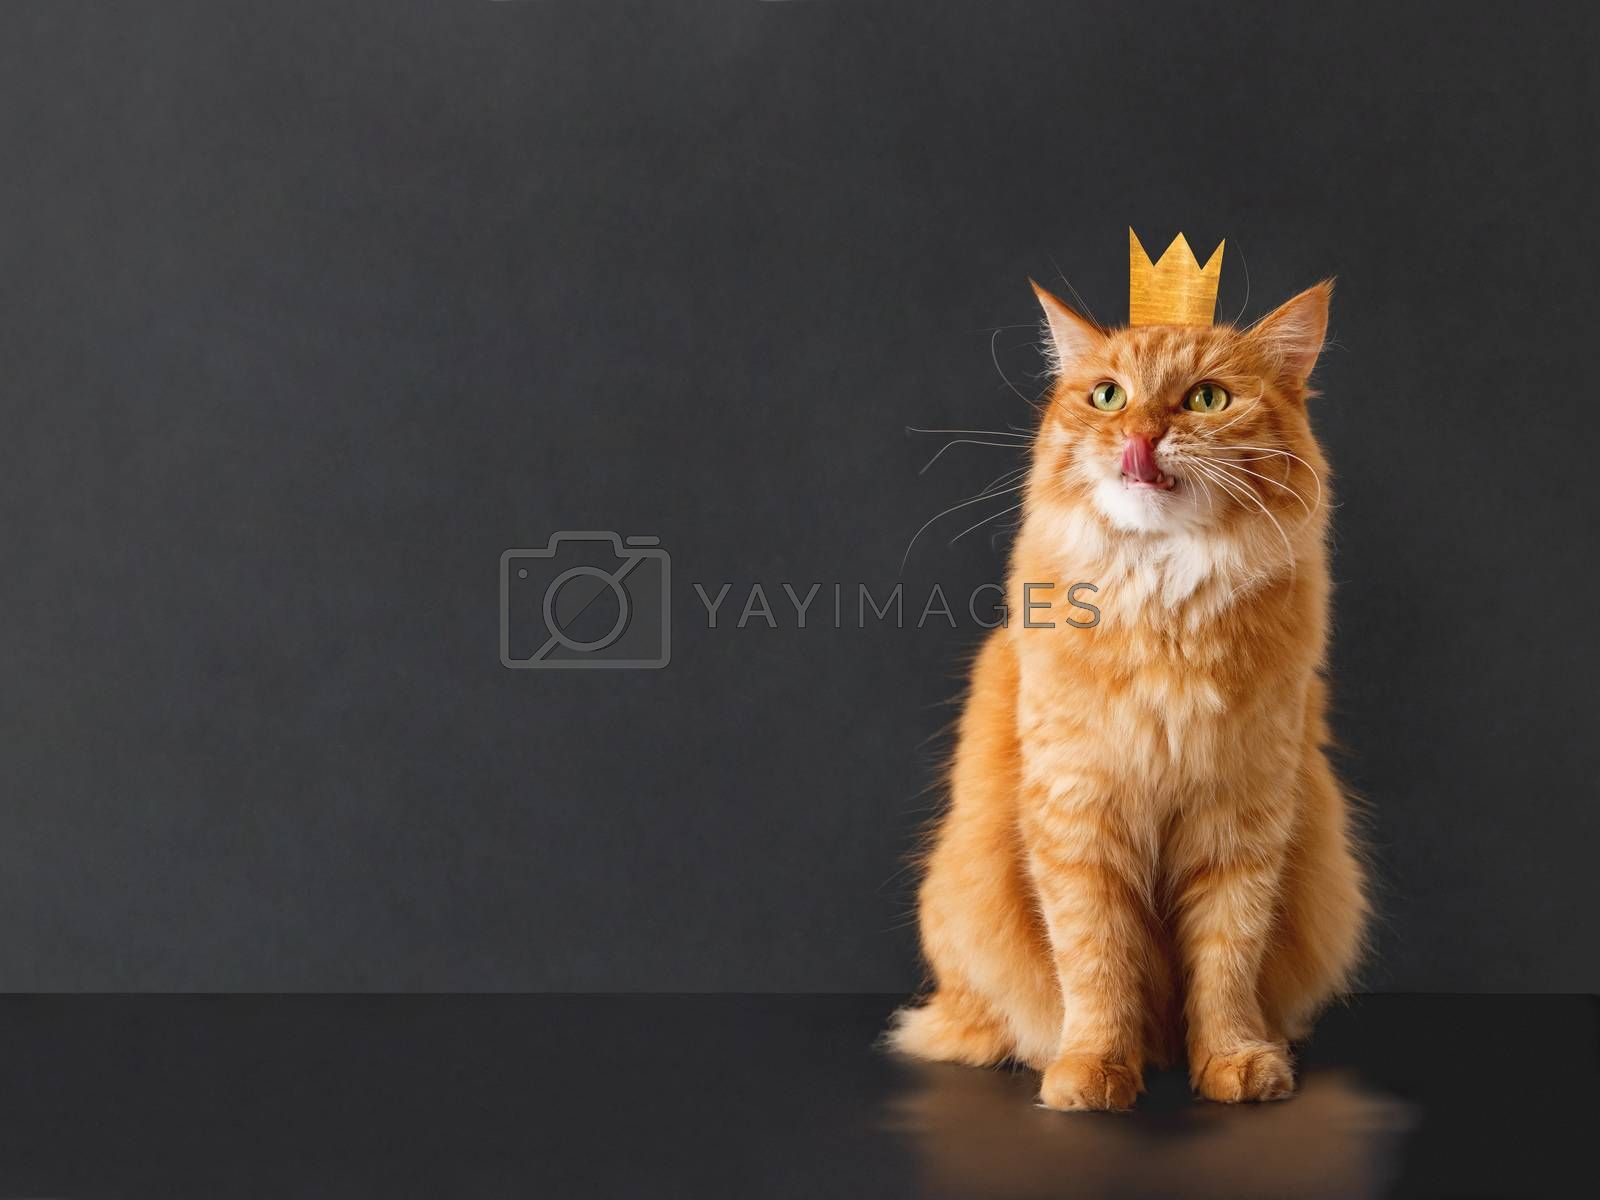 Cute ginger cat with awesome expression on face and golden crown on head posing like lion. Fluffy pet licks its lips. Black background with copy space.